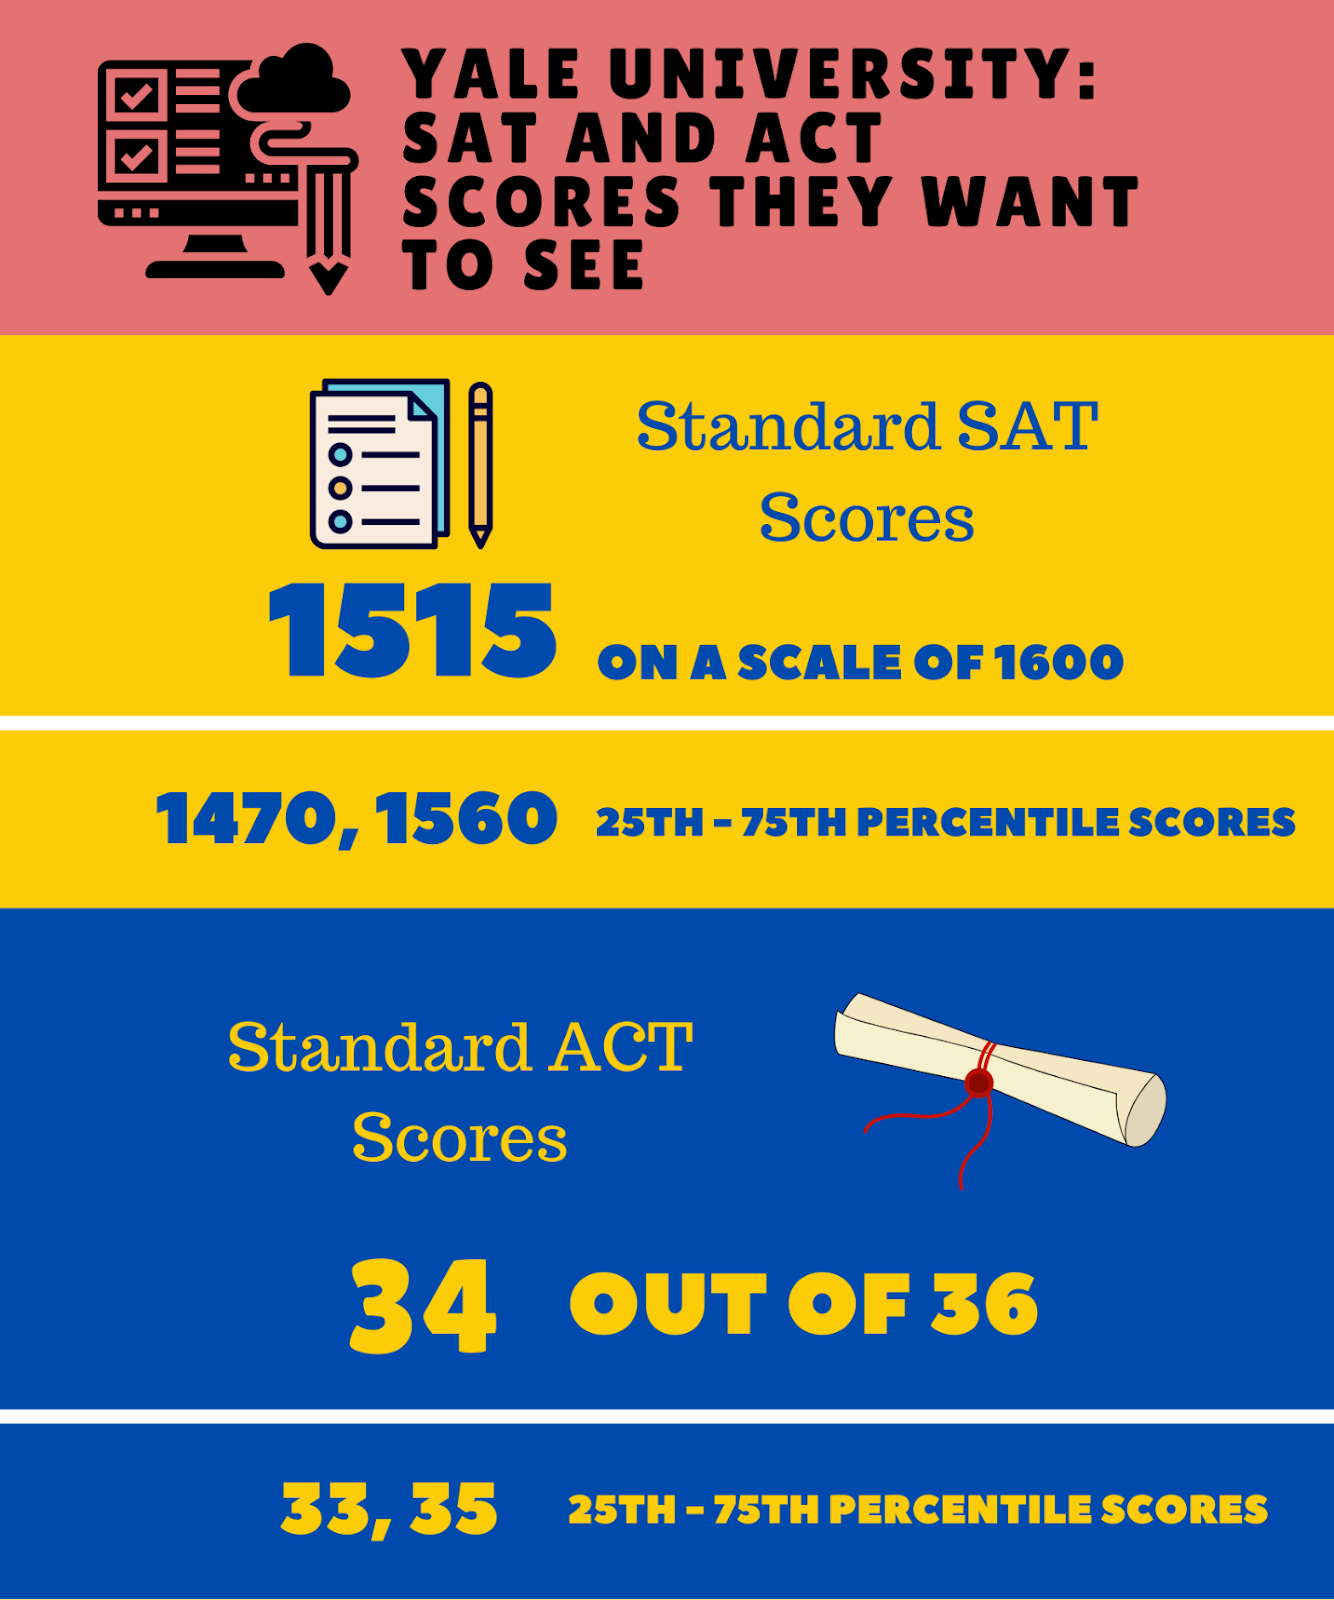 SAT and ACT scores Yale University want to see